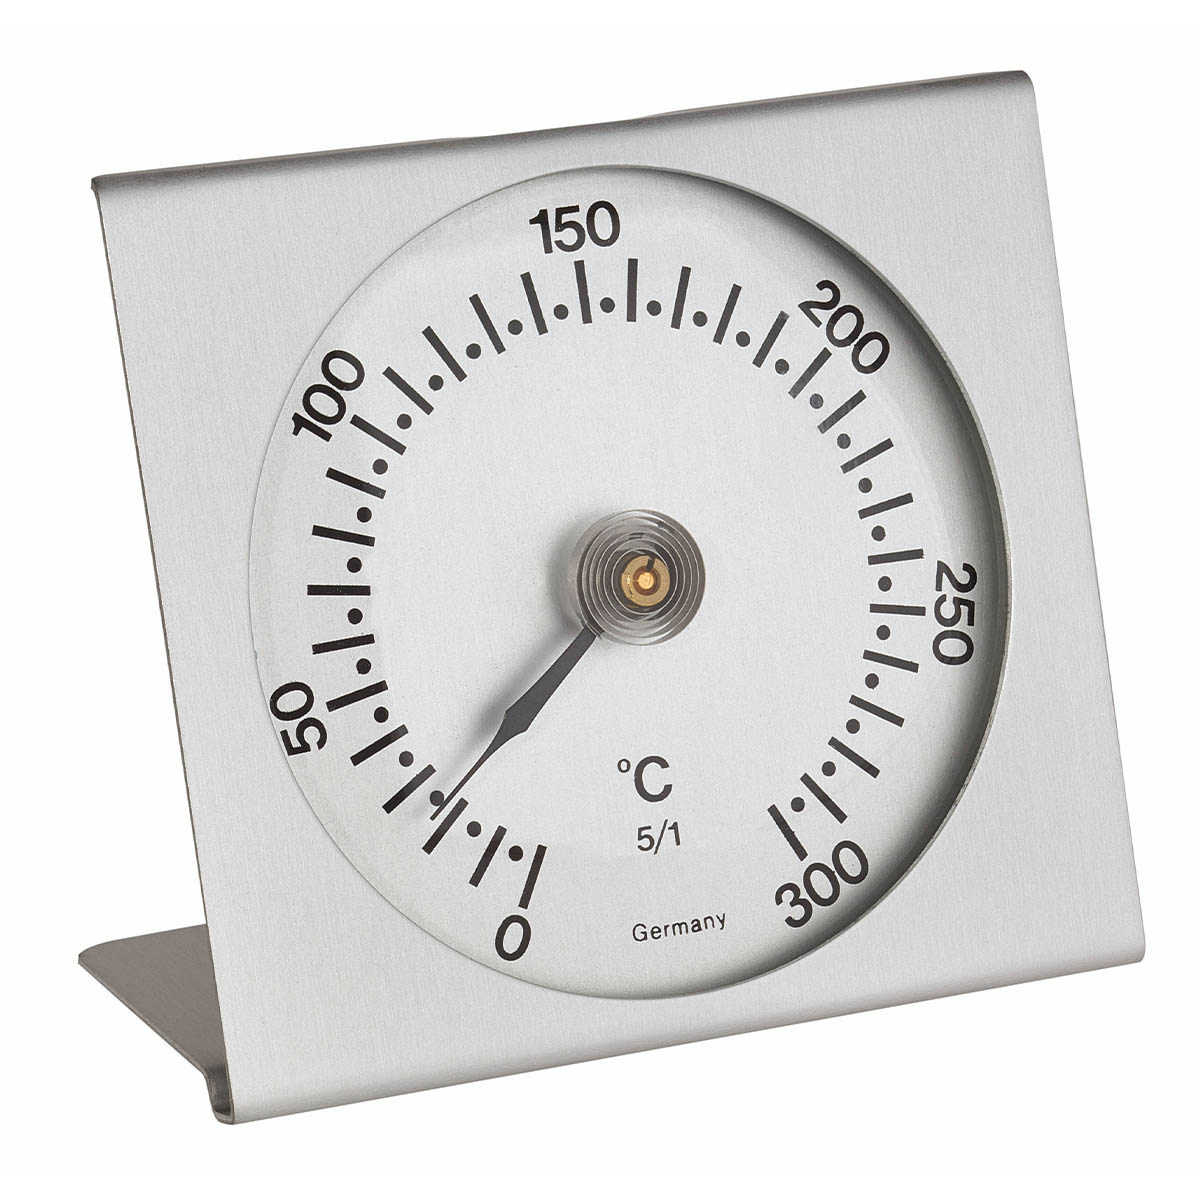 14-1004-55-analoges-backofenthermometer-metall-1200x1200px.jpg